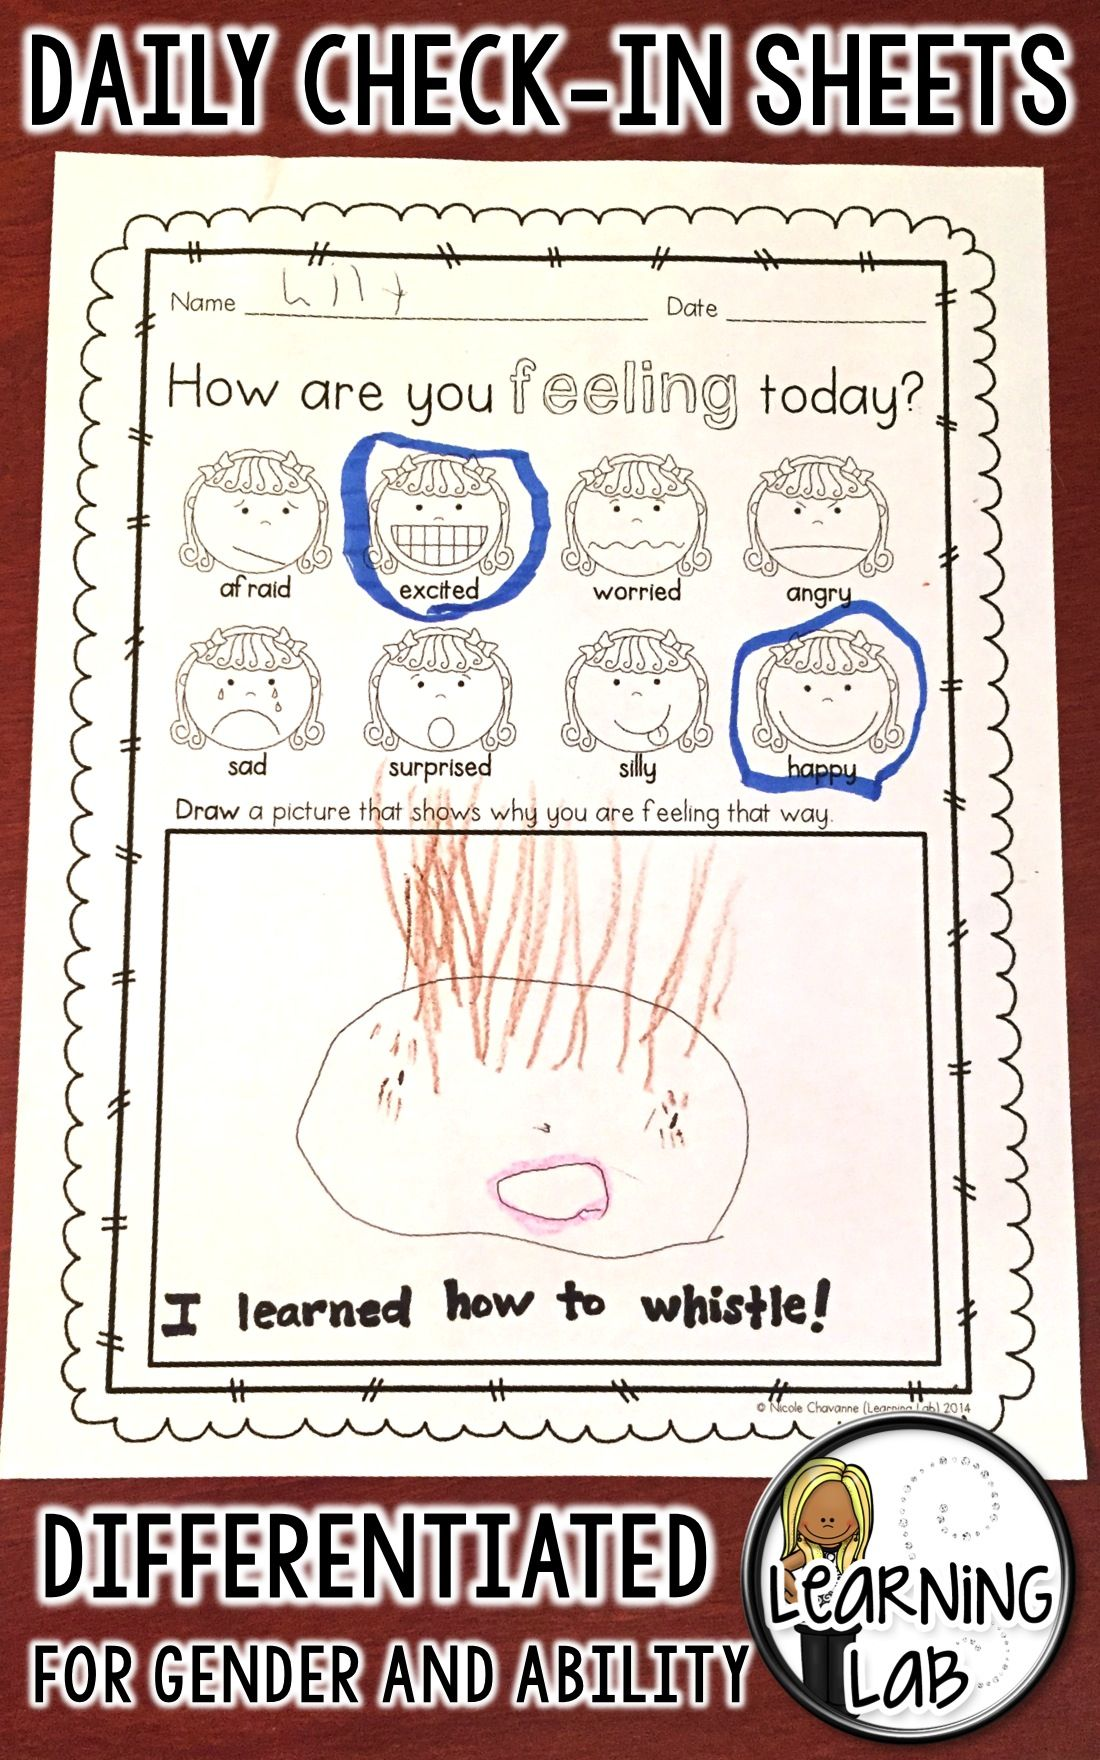 Daily Check In Sheet Help Students Explore Their Feelings